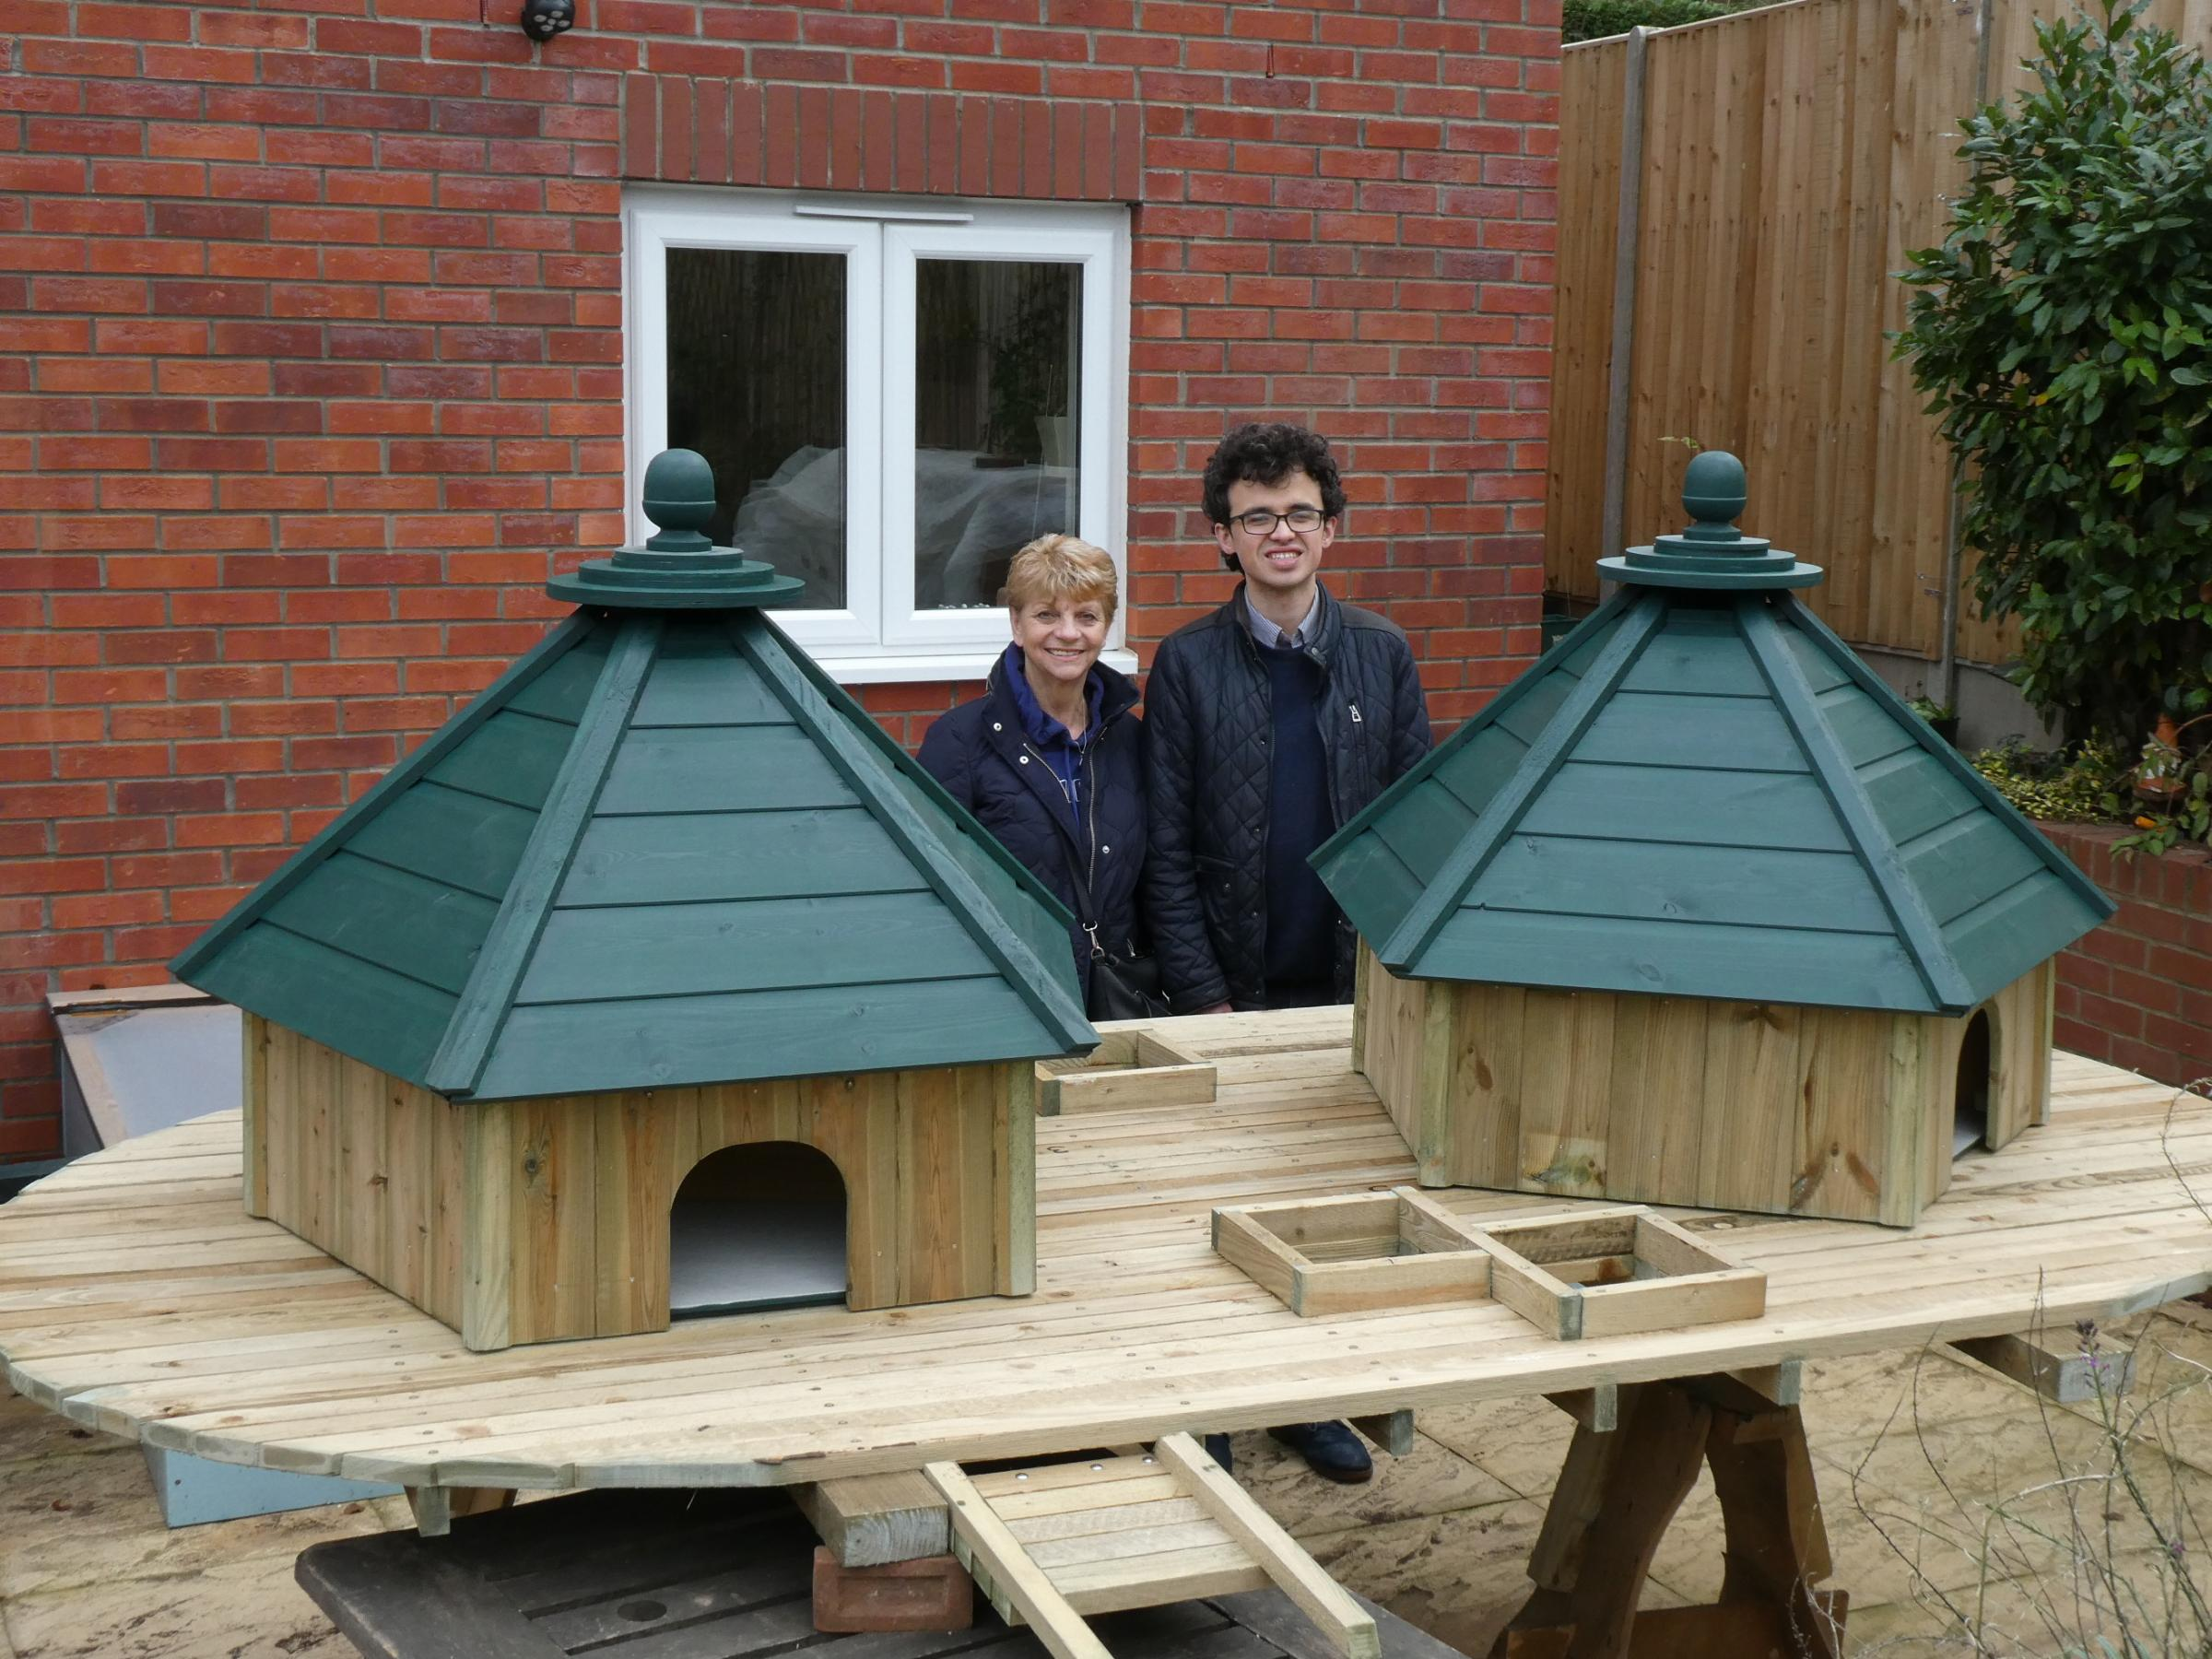 Cllr Mrs Christine Howley and Cllr Eli Heathfield with the duck platform